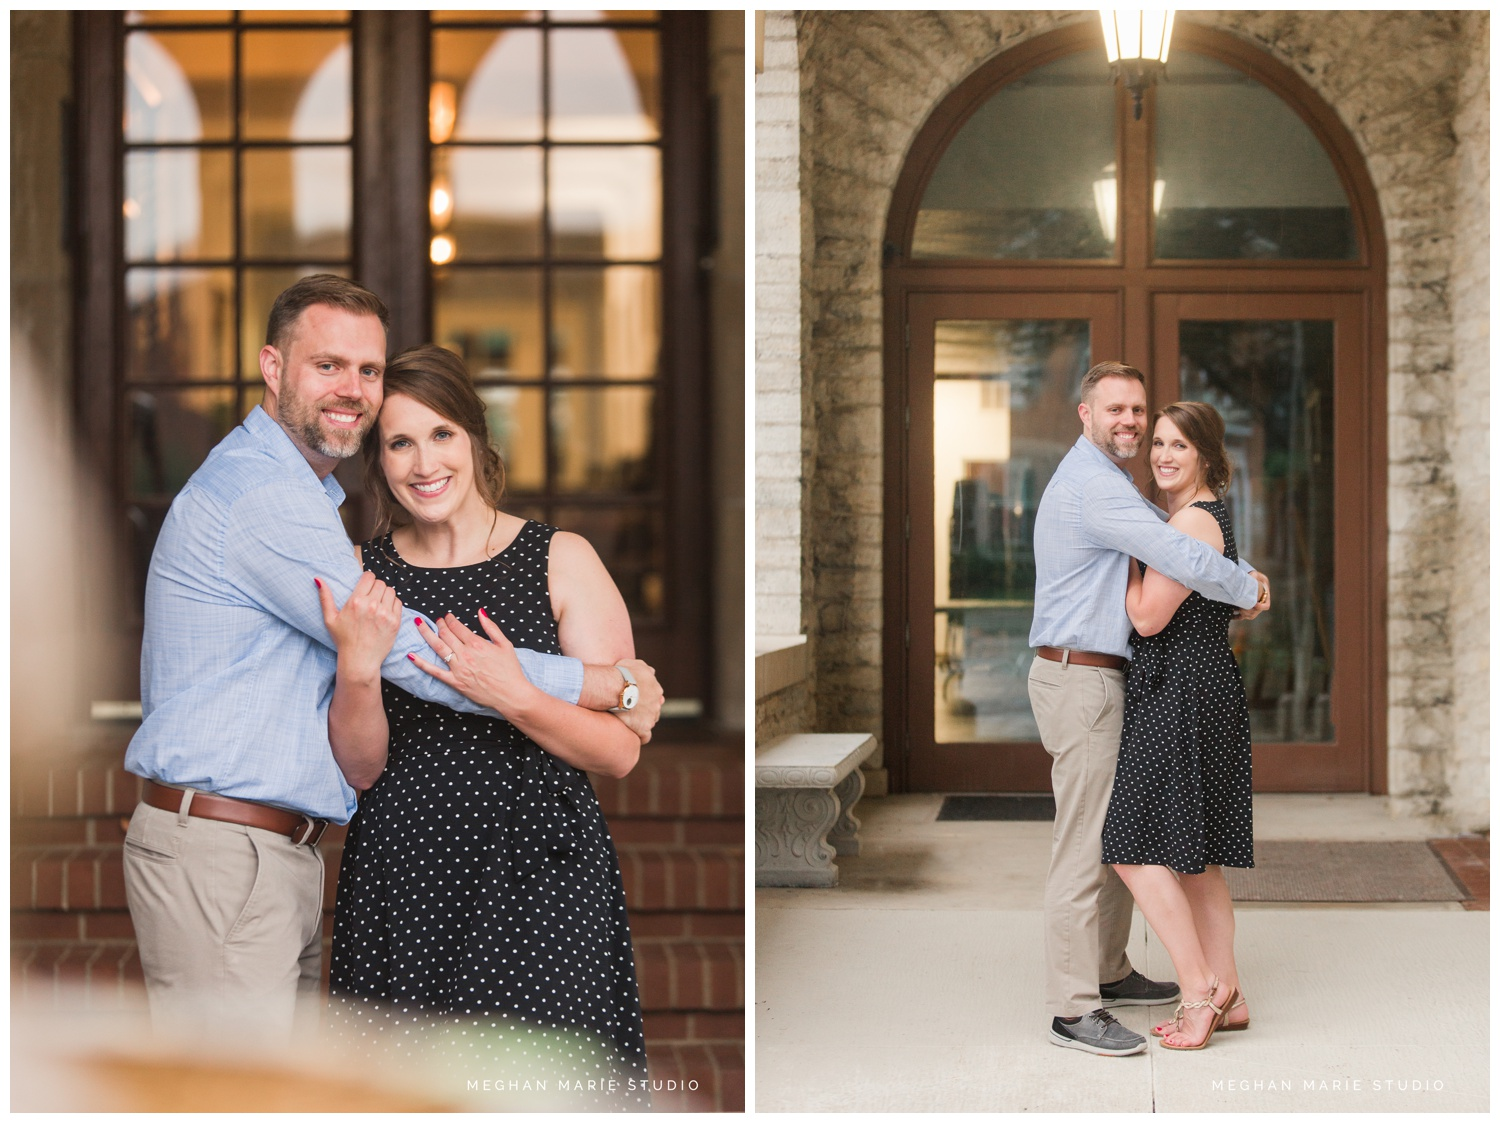 downtown-troy-urban-vintage-engagement-wedding-photography-hayner-cultural-center-meghan-marie-studio_0169.jpg